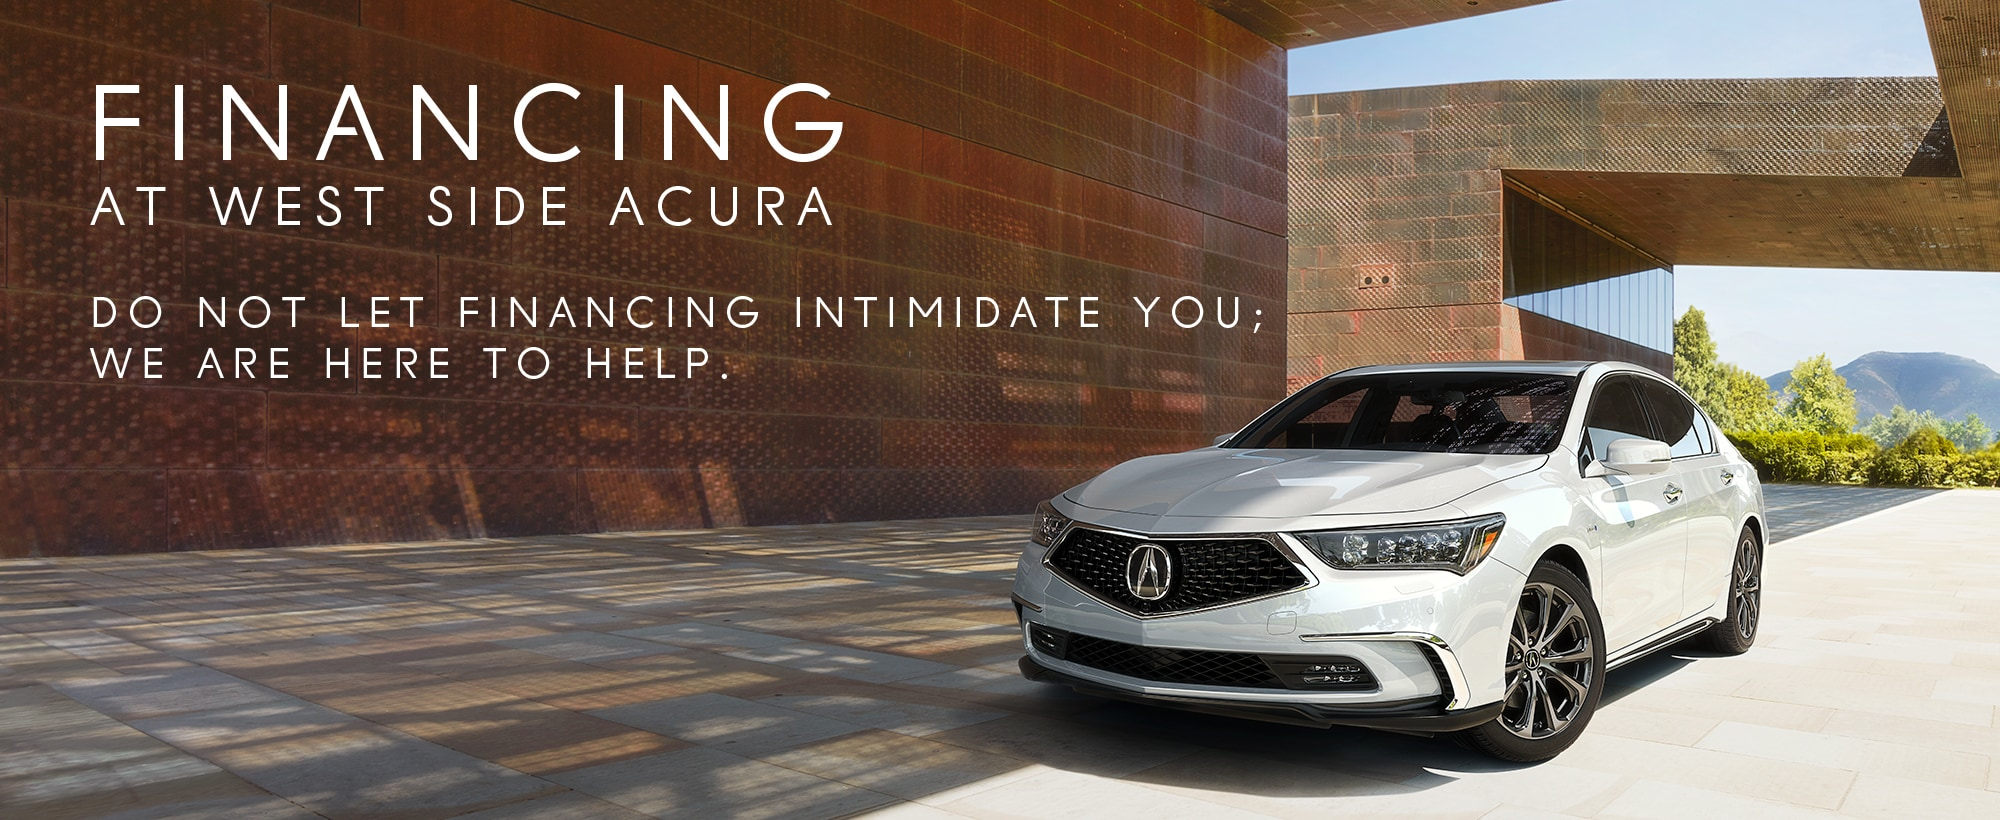 Acura Financing FAQ - West Side Acura